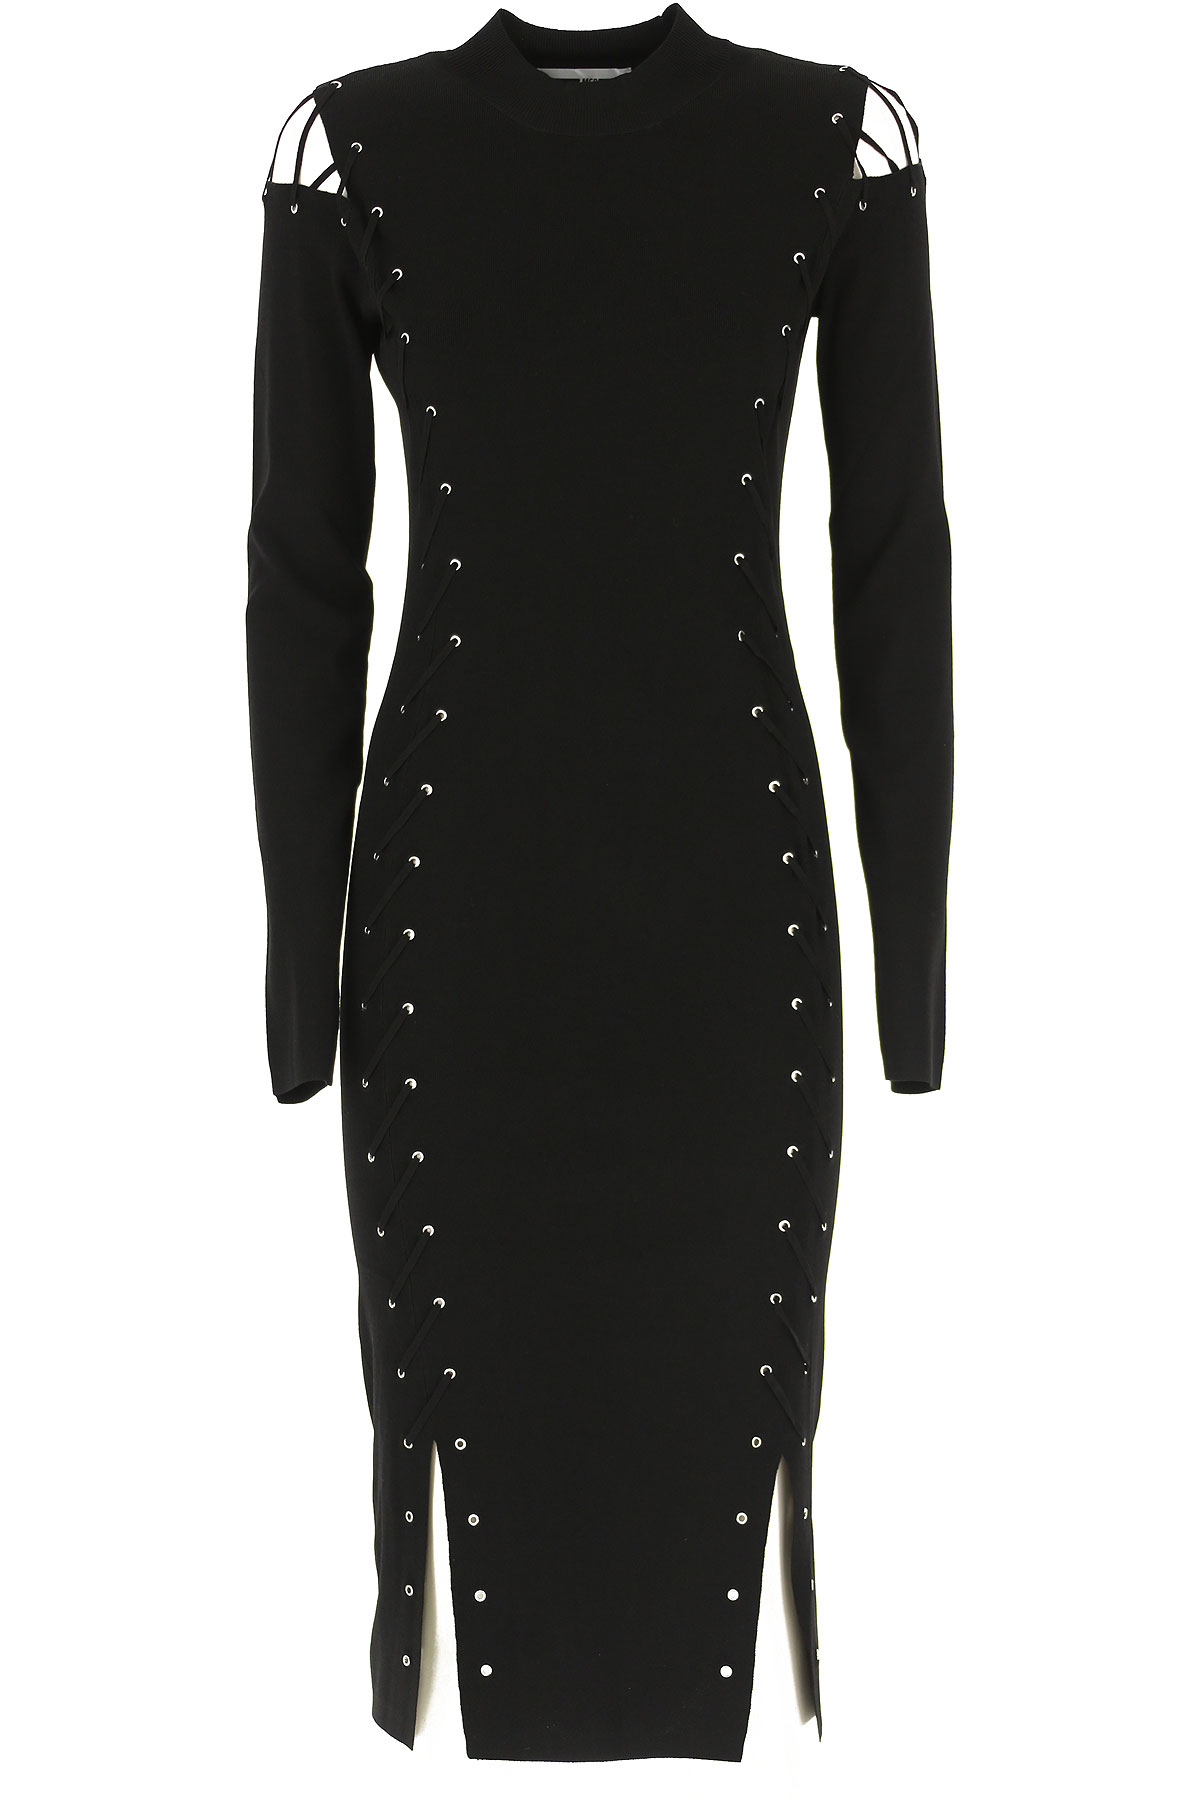 Alexander McQueen McQ Dress for Women, Evening Cocktail Party On Sale, Black, viscosa, 2019, 4 6